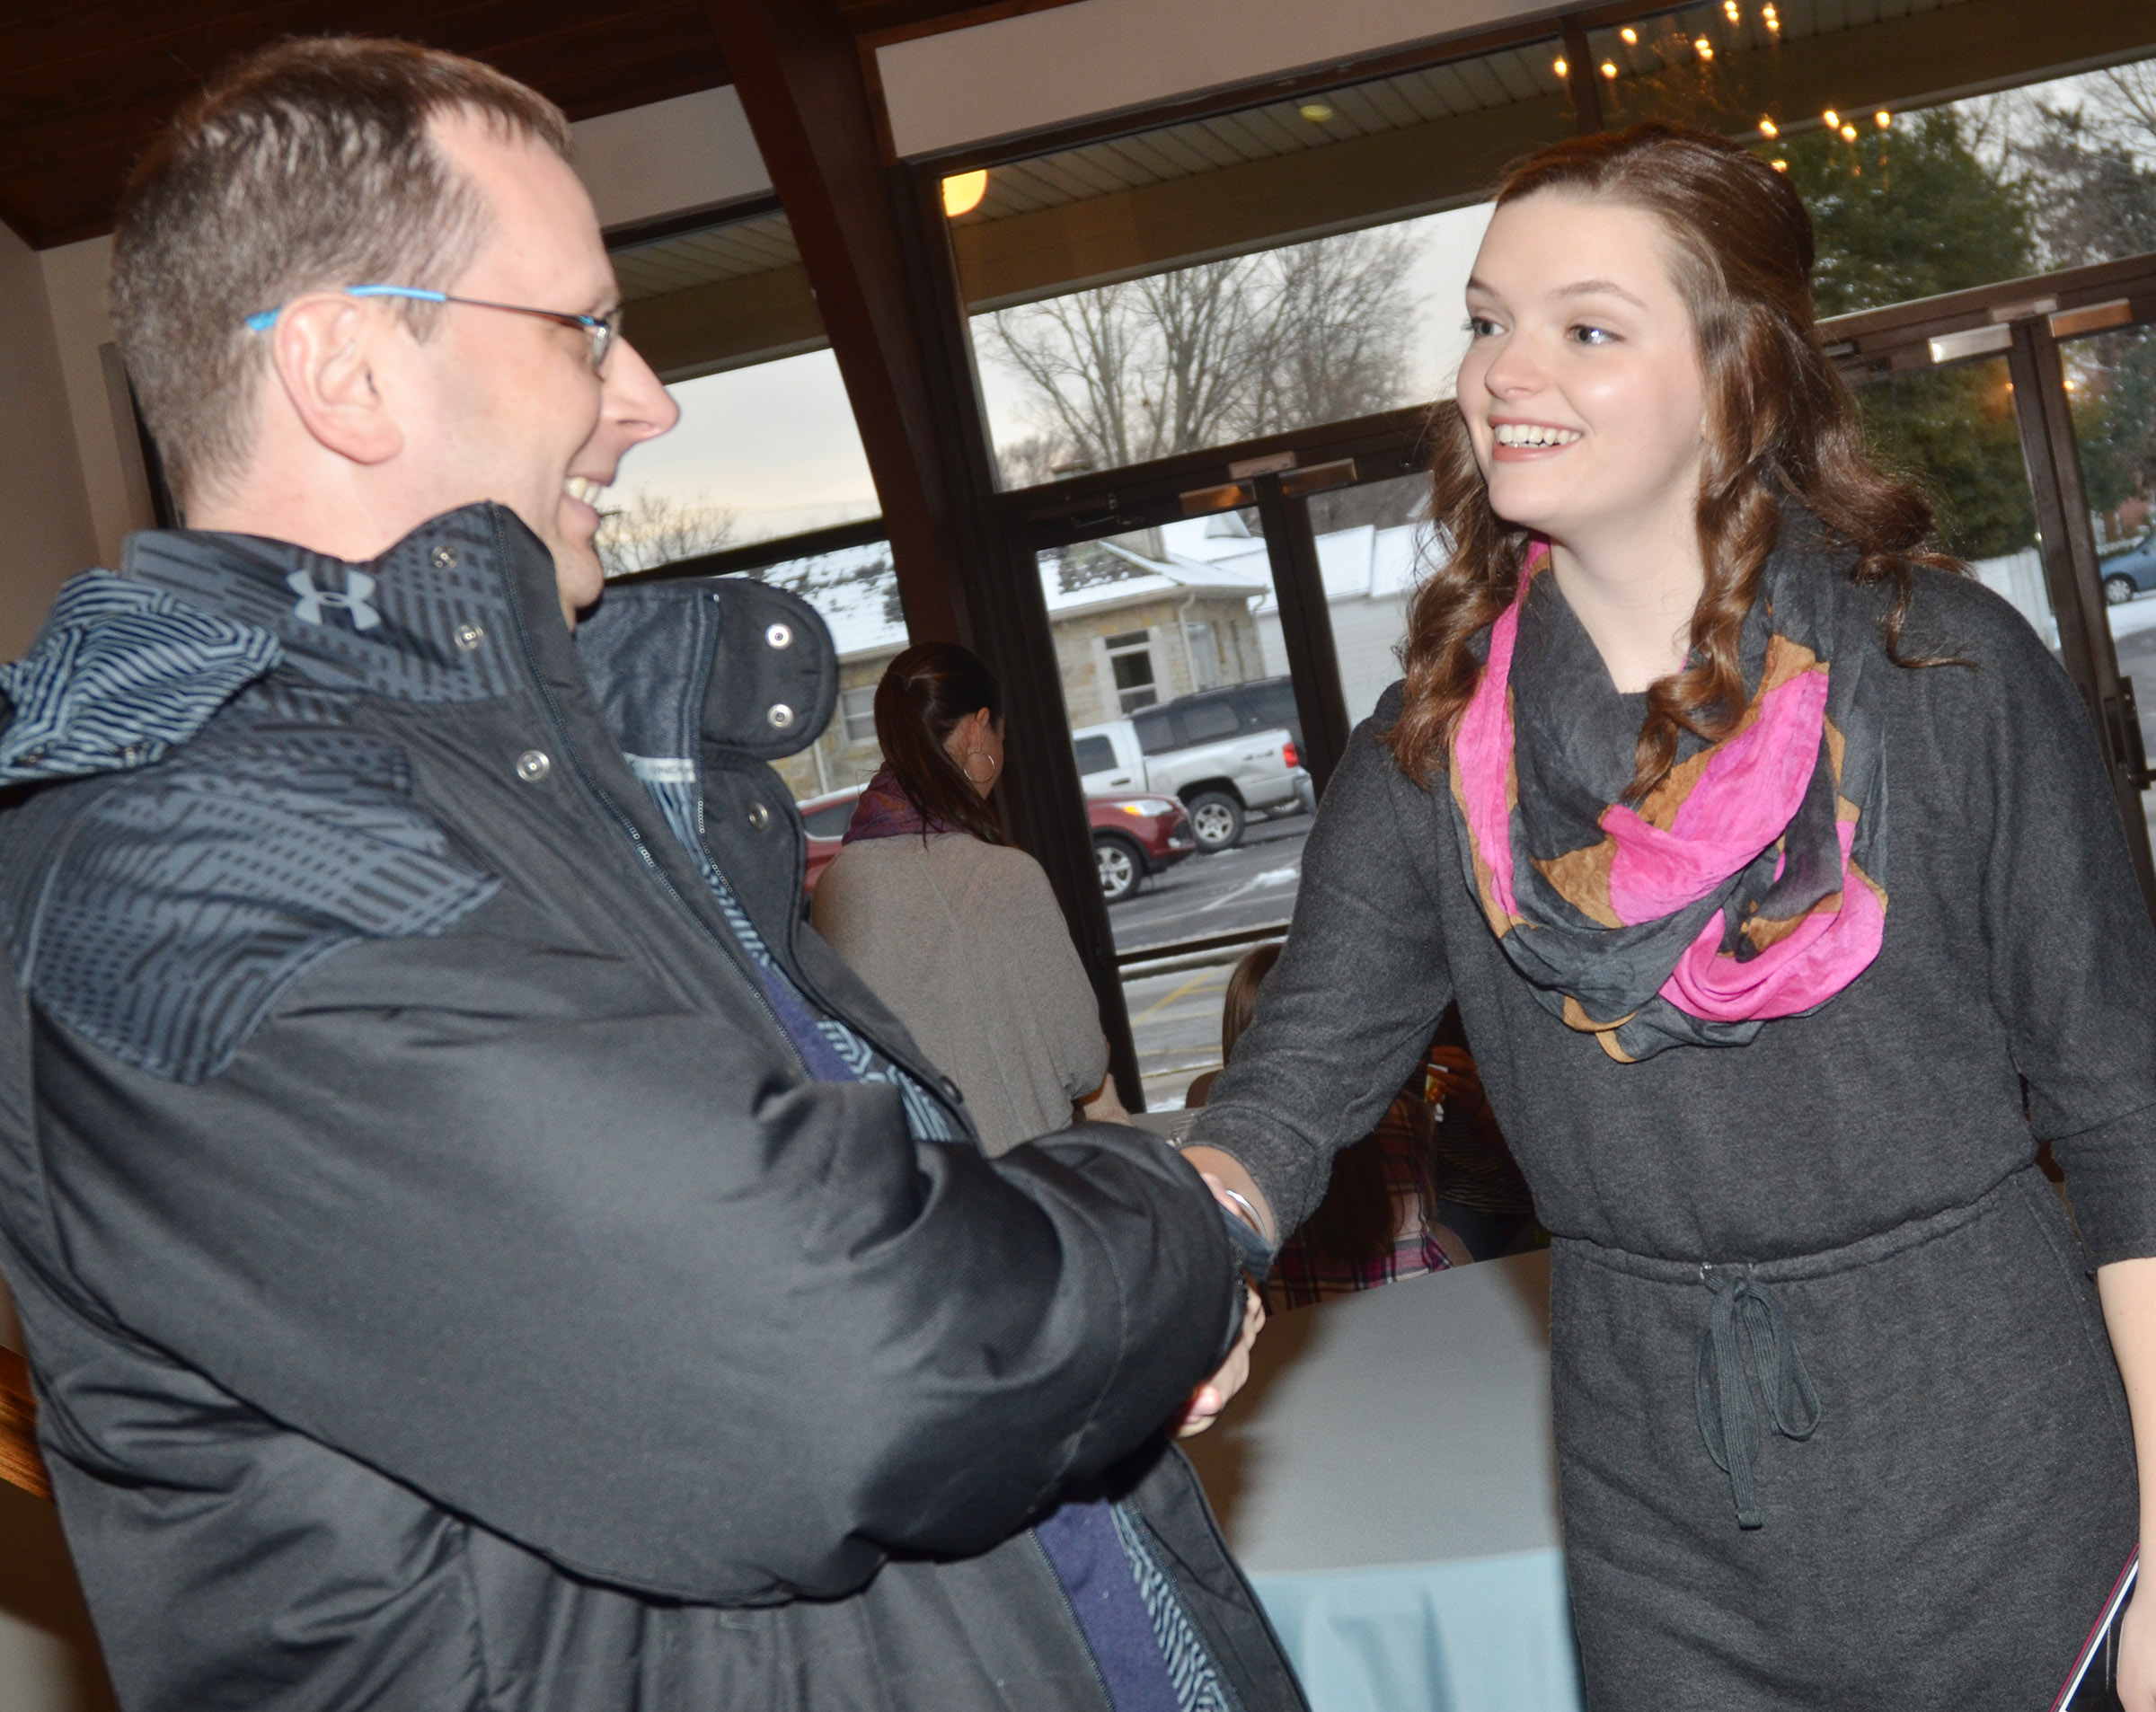 CHS senior Blair Lamb was honored at a reception on Friday, Jan. 6, before she left to compete in the Kentucky Distinguished Young Women competition. Above, she is congratulated by CHS Guidance Counselor Richard Dooley.